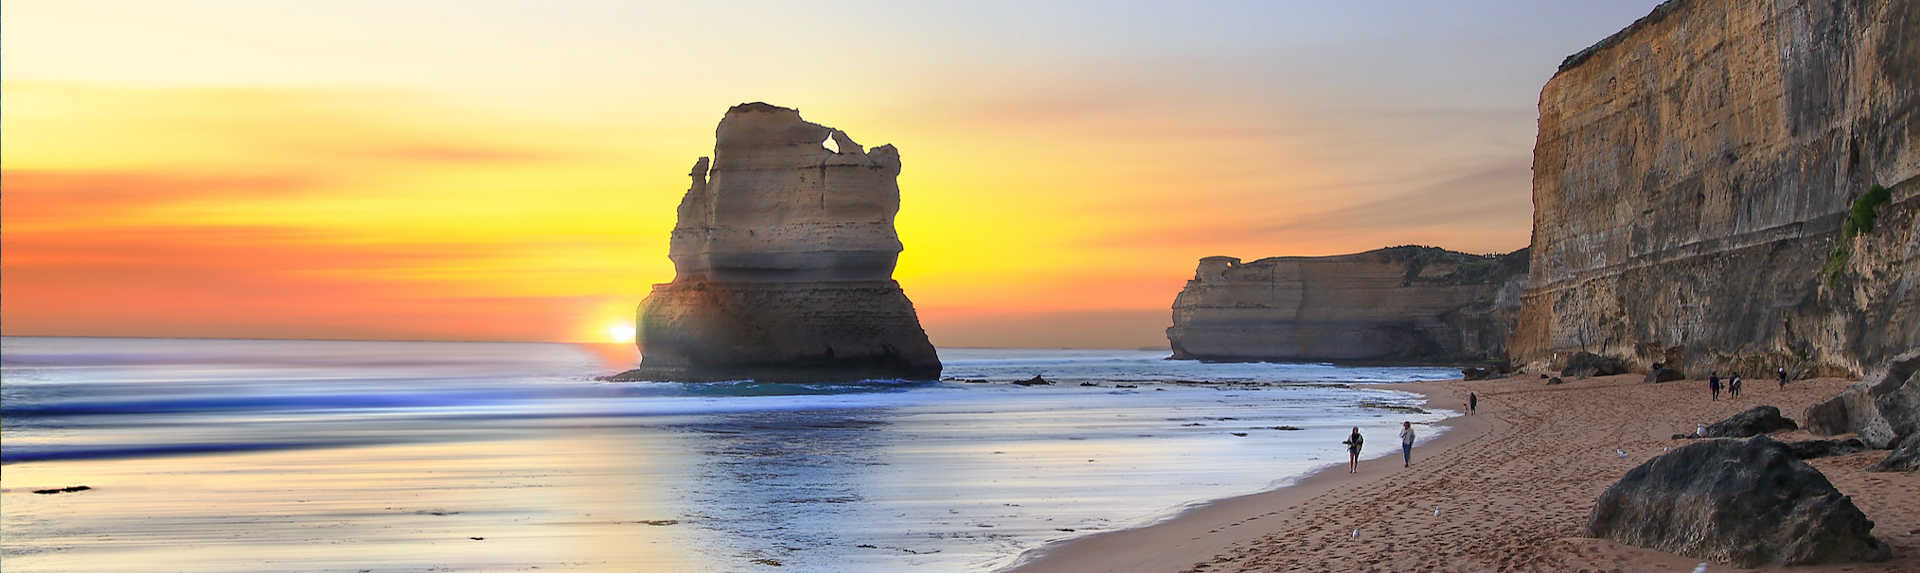 Where should I go for a day trip from Melbourne?